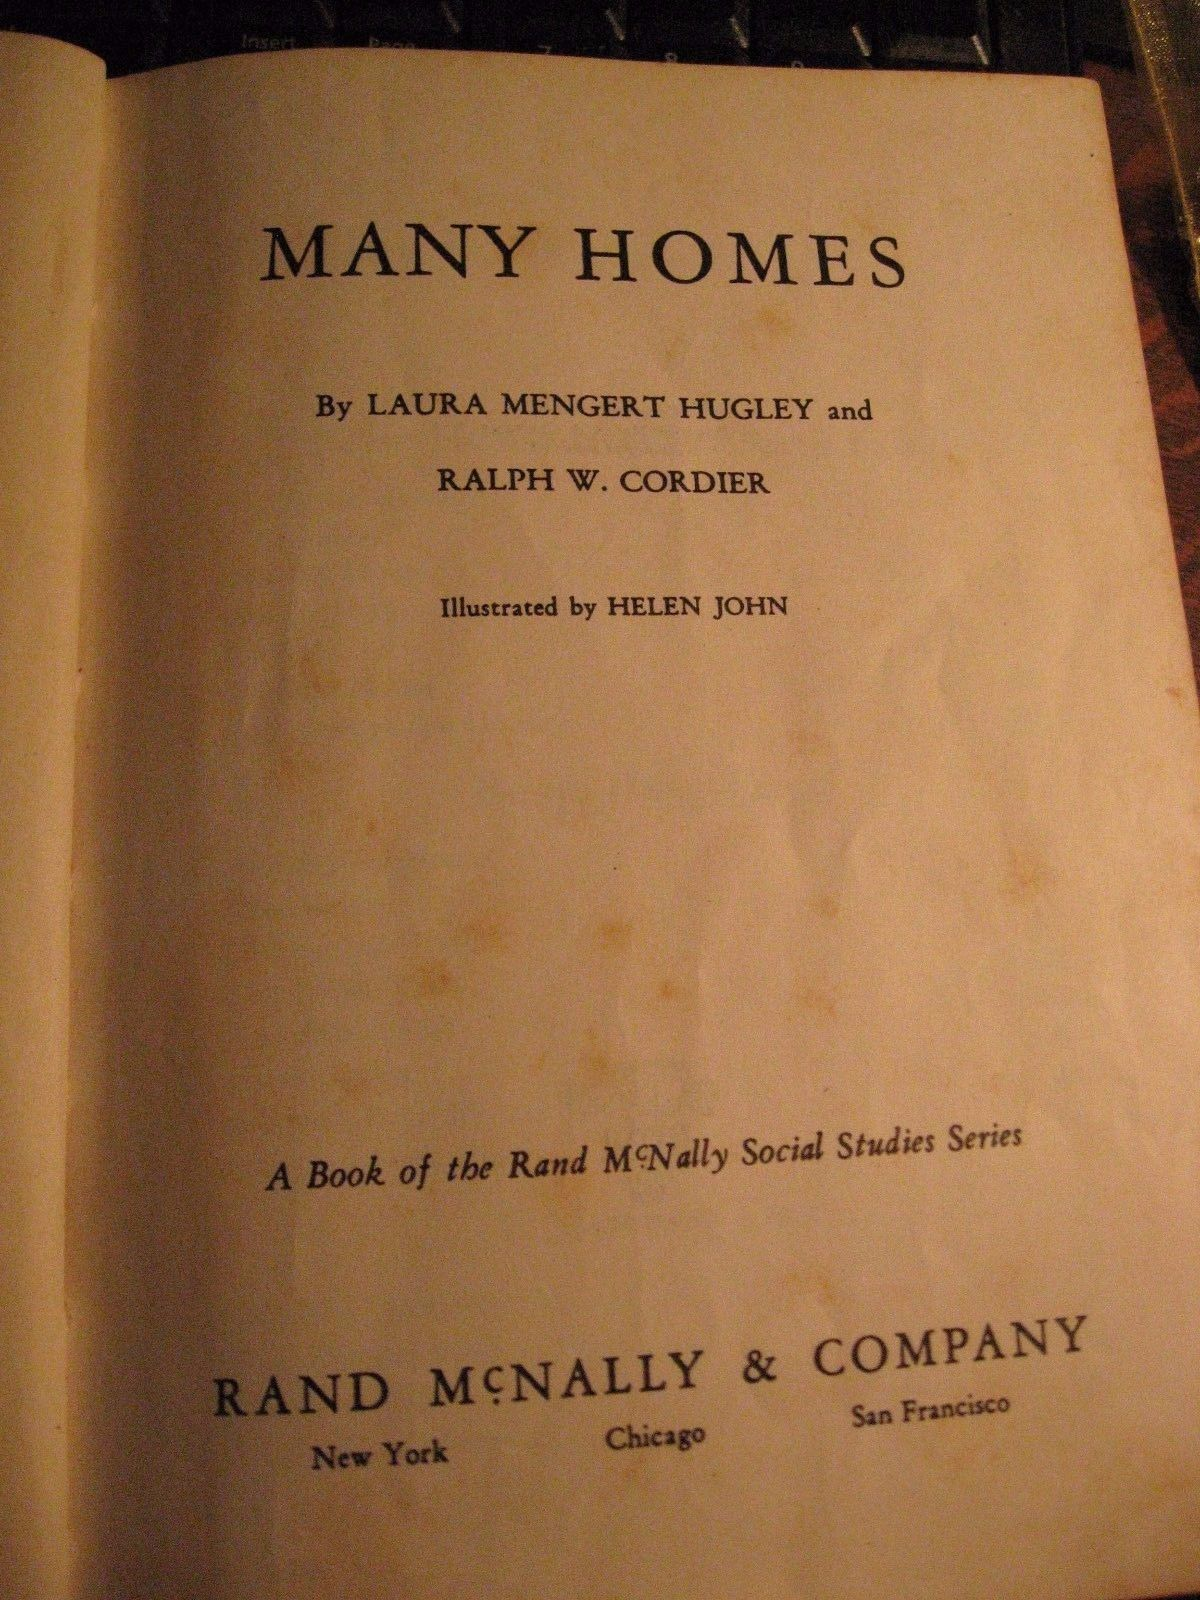 Many Homes 1950 Book - Vintage Rand McNally Social Studies Series Hugley Cordier